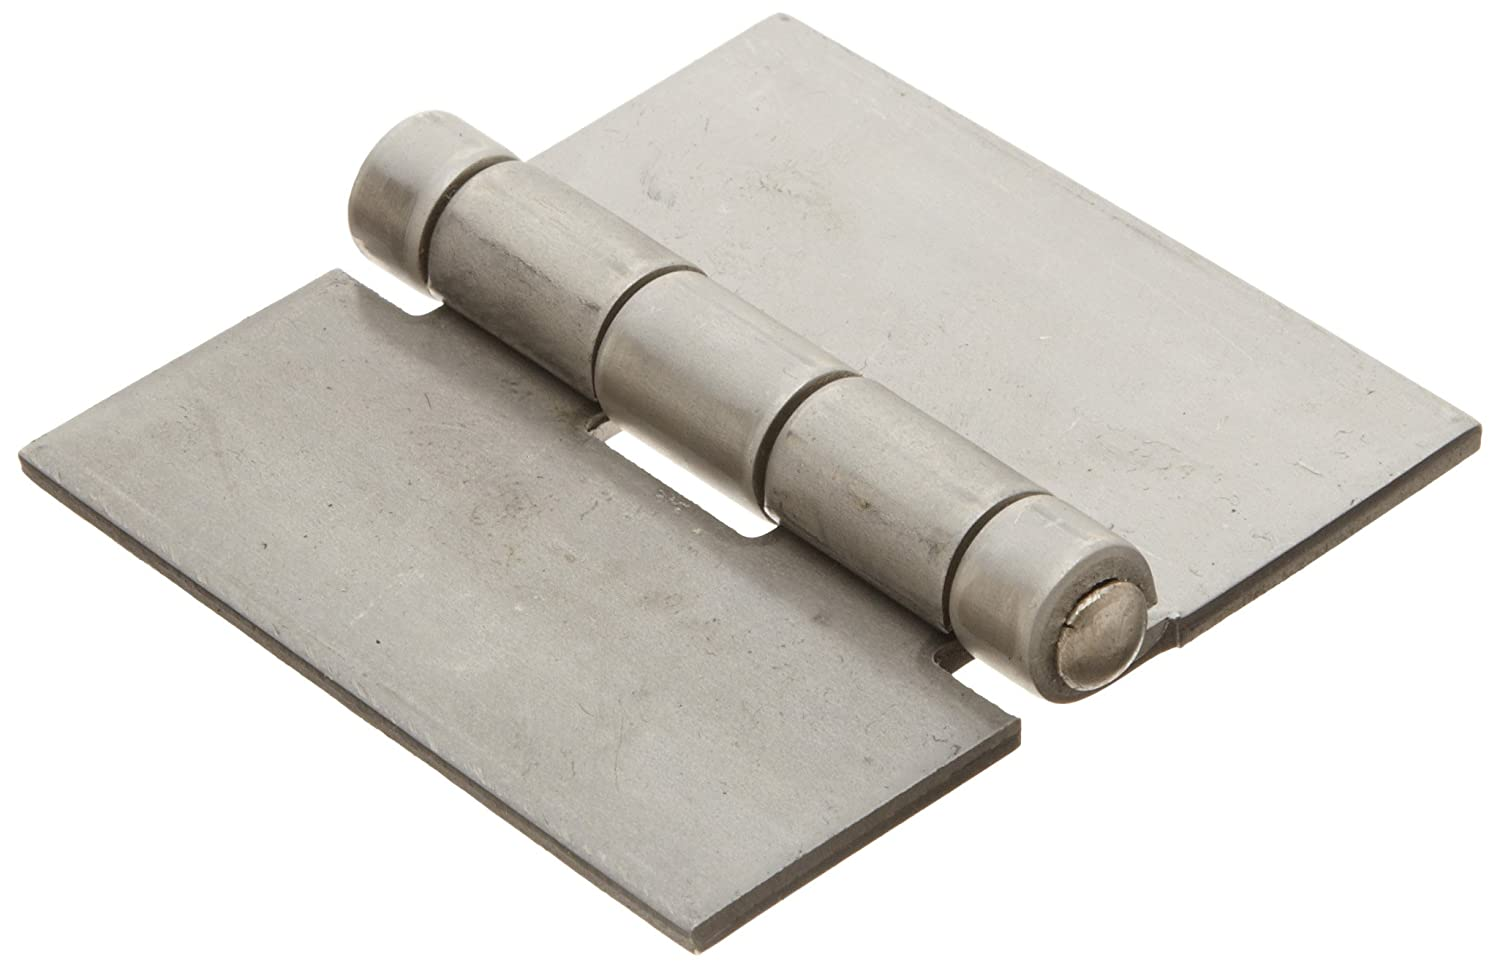 Stainless Steel 316 Surface Mount Butt Hinge without Hole, 2B Mill Finish, 0.120' Leaf Thickness, 3' Open Width, 1/4' Pin Diameter, 3' Long, Non-Removable Pin (Pack of 1) 0.120 Leaf Thickness 3 Open Width 1/4 Pin Diameter 3 Long Marlboro